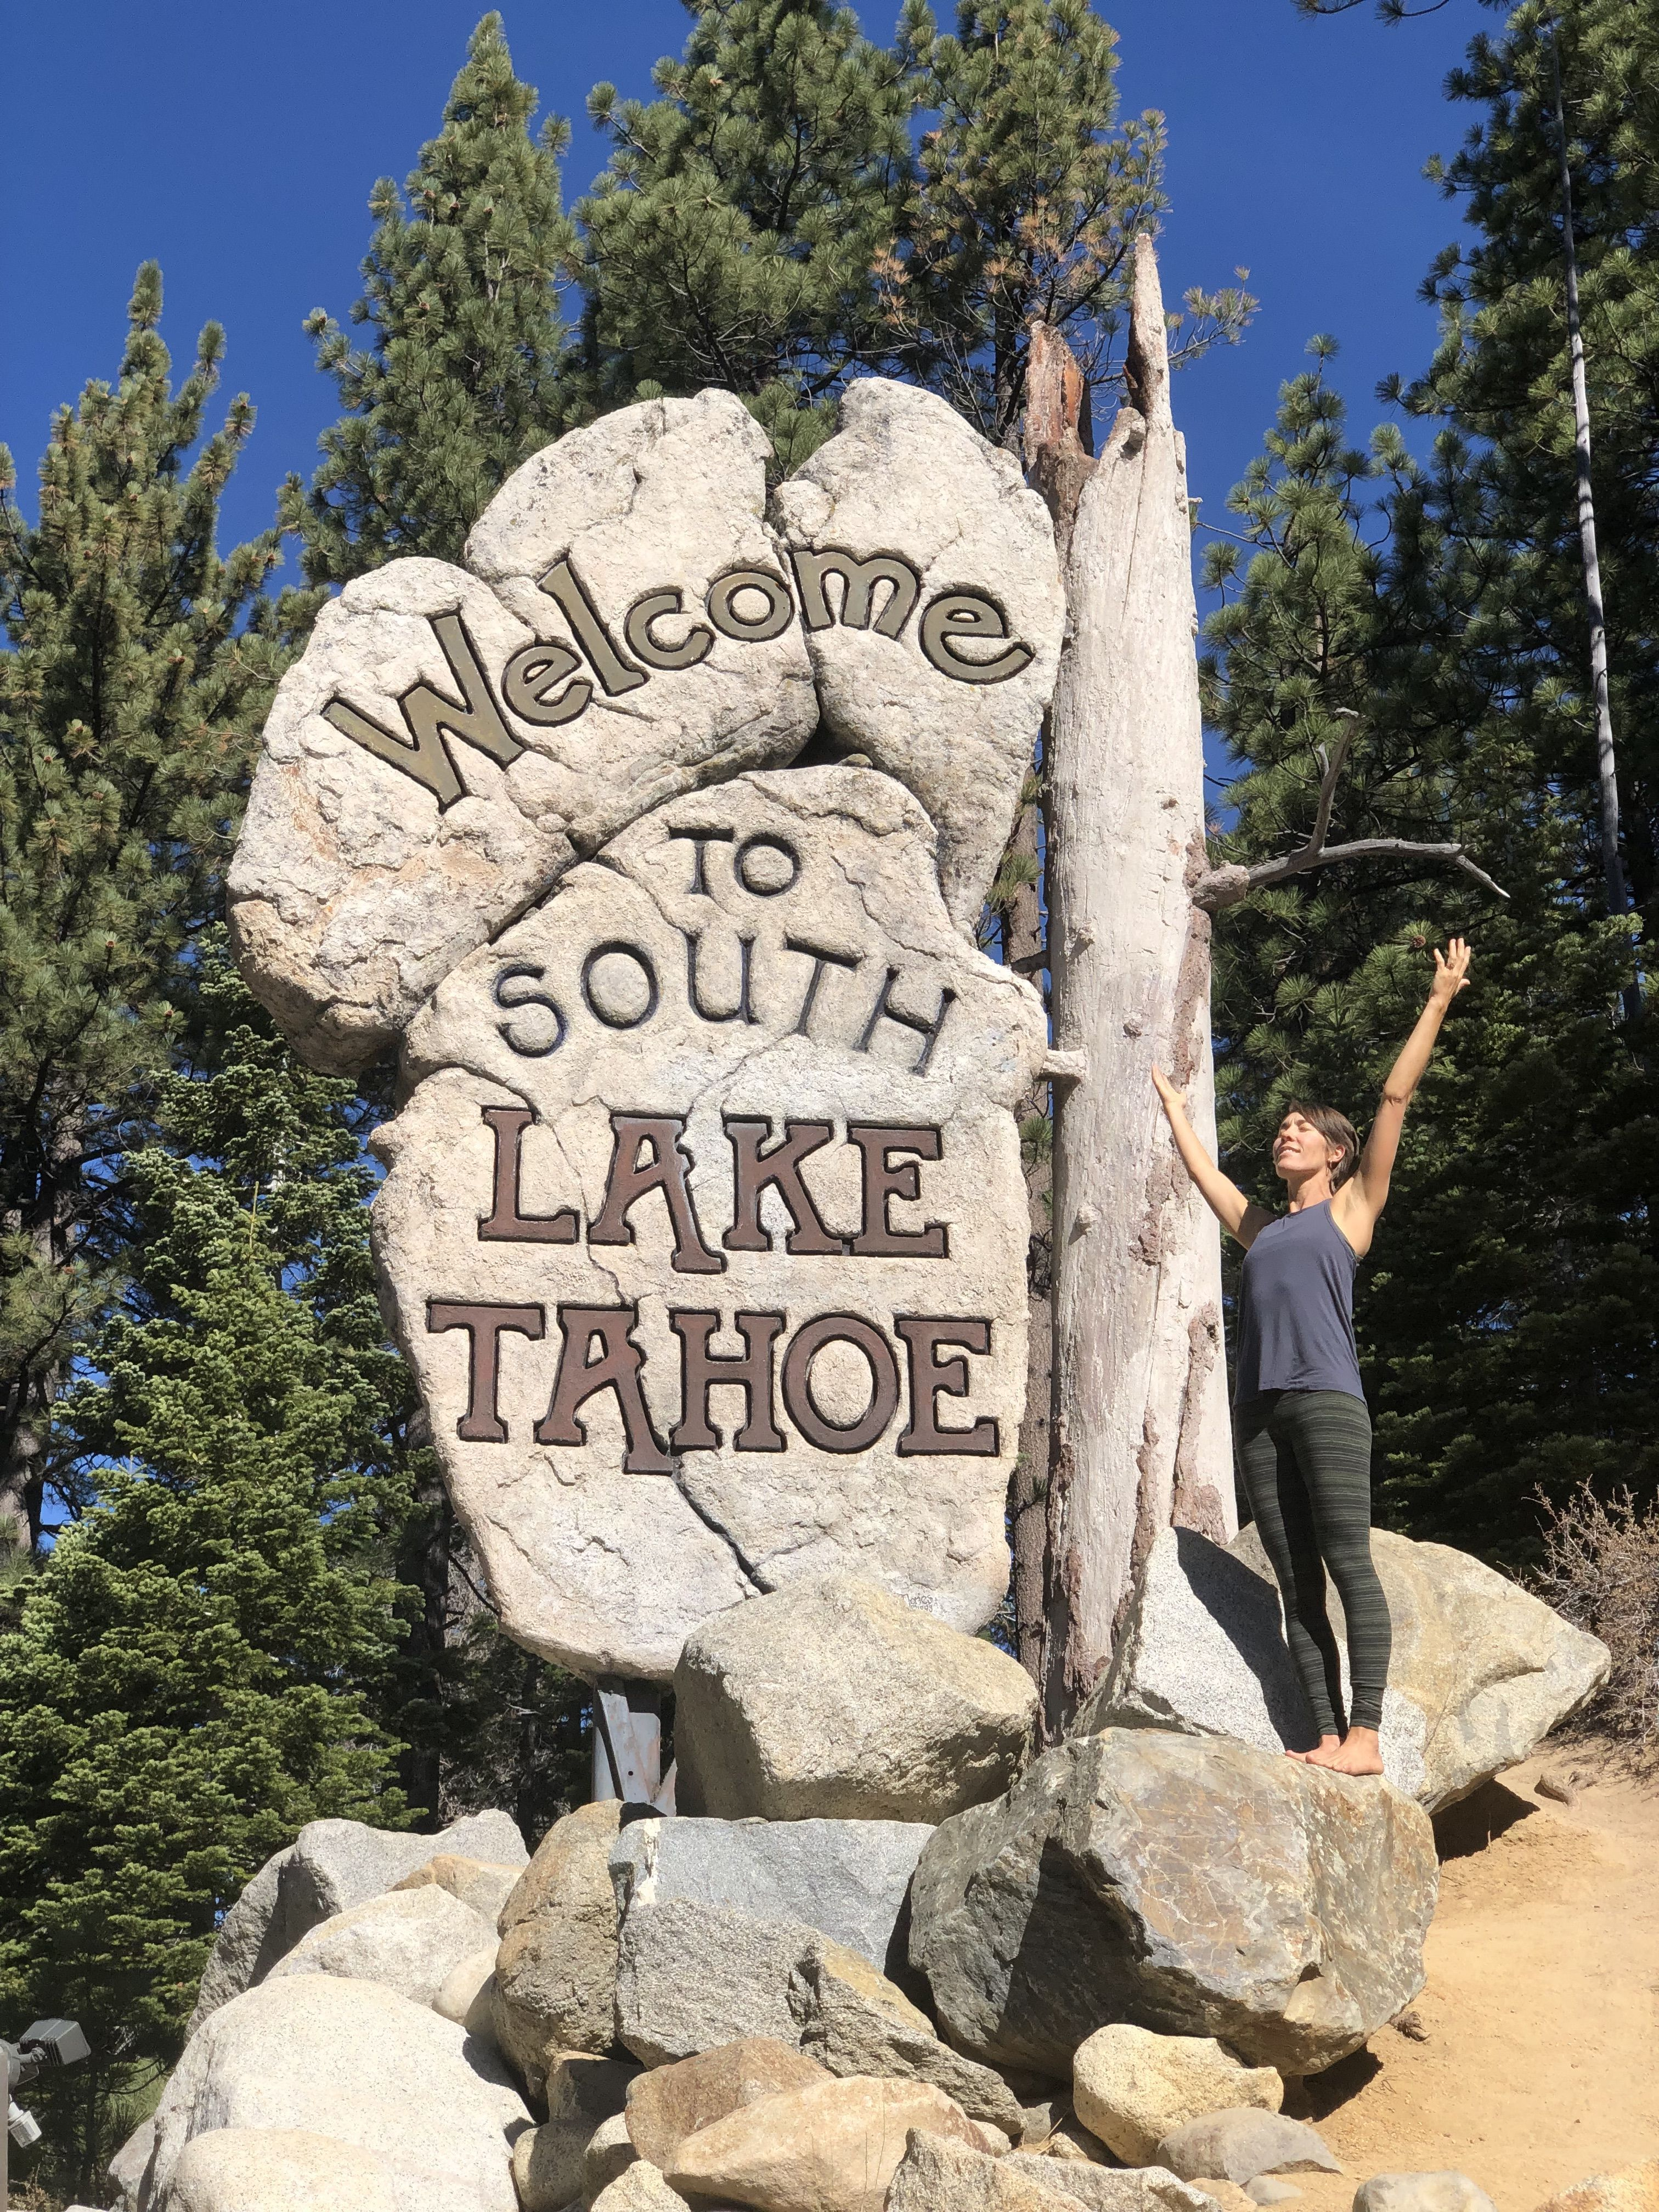 Tyc Shares 5 Ways To Support Your Staff Depth Of Knowledge The Incredibles South Lake Tahoe